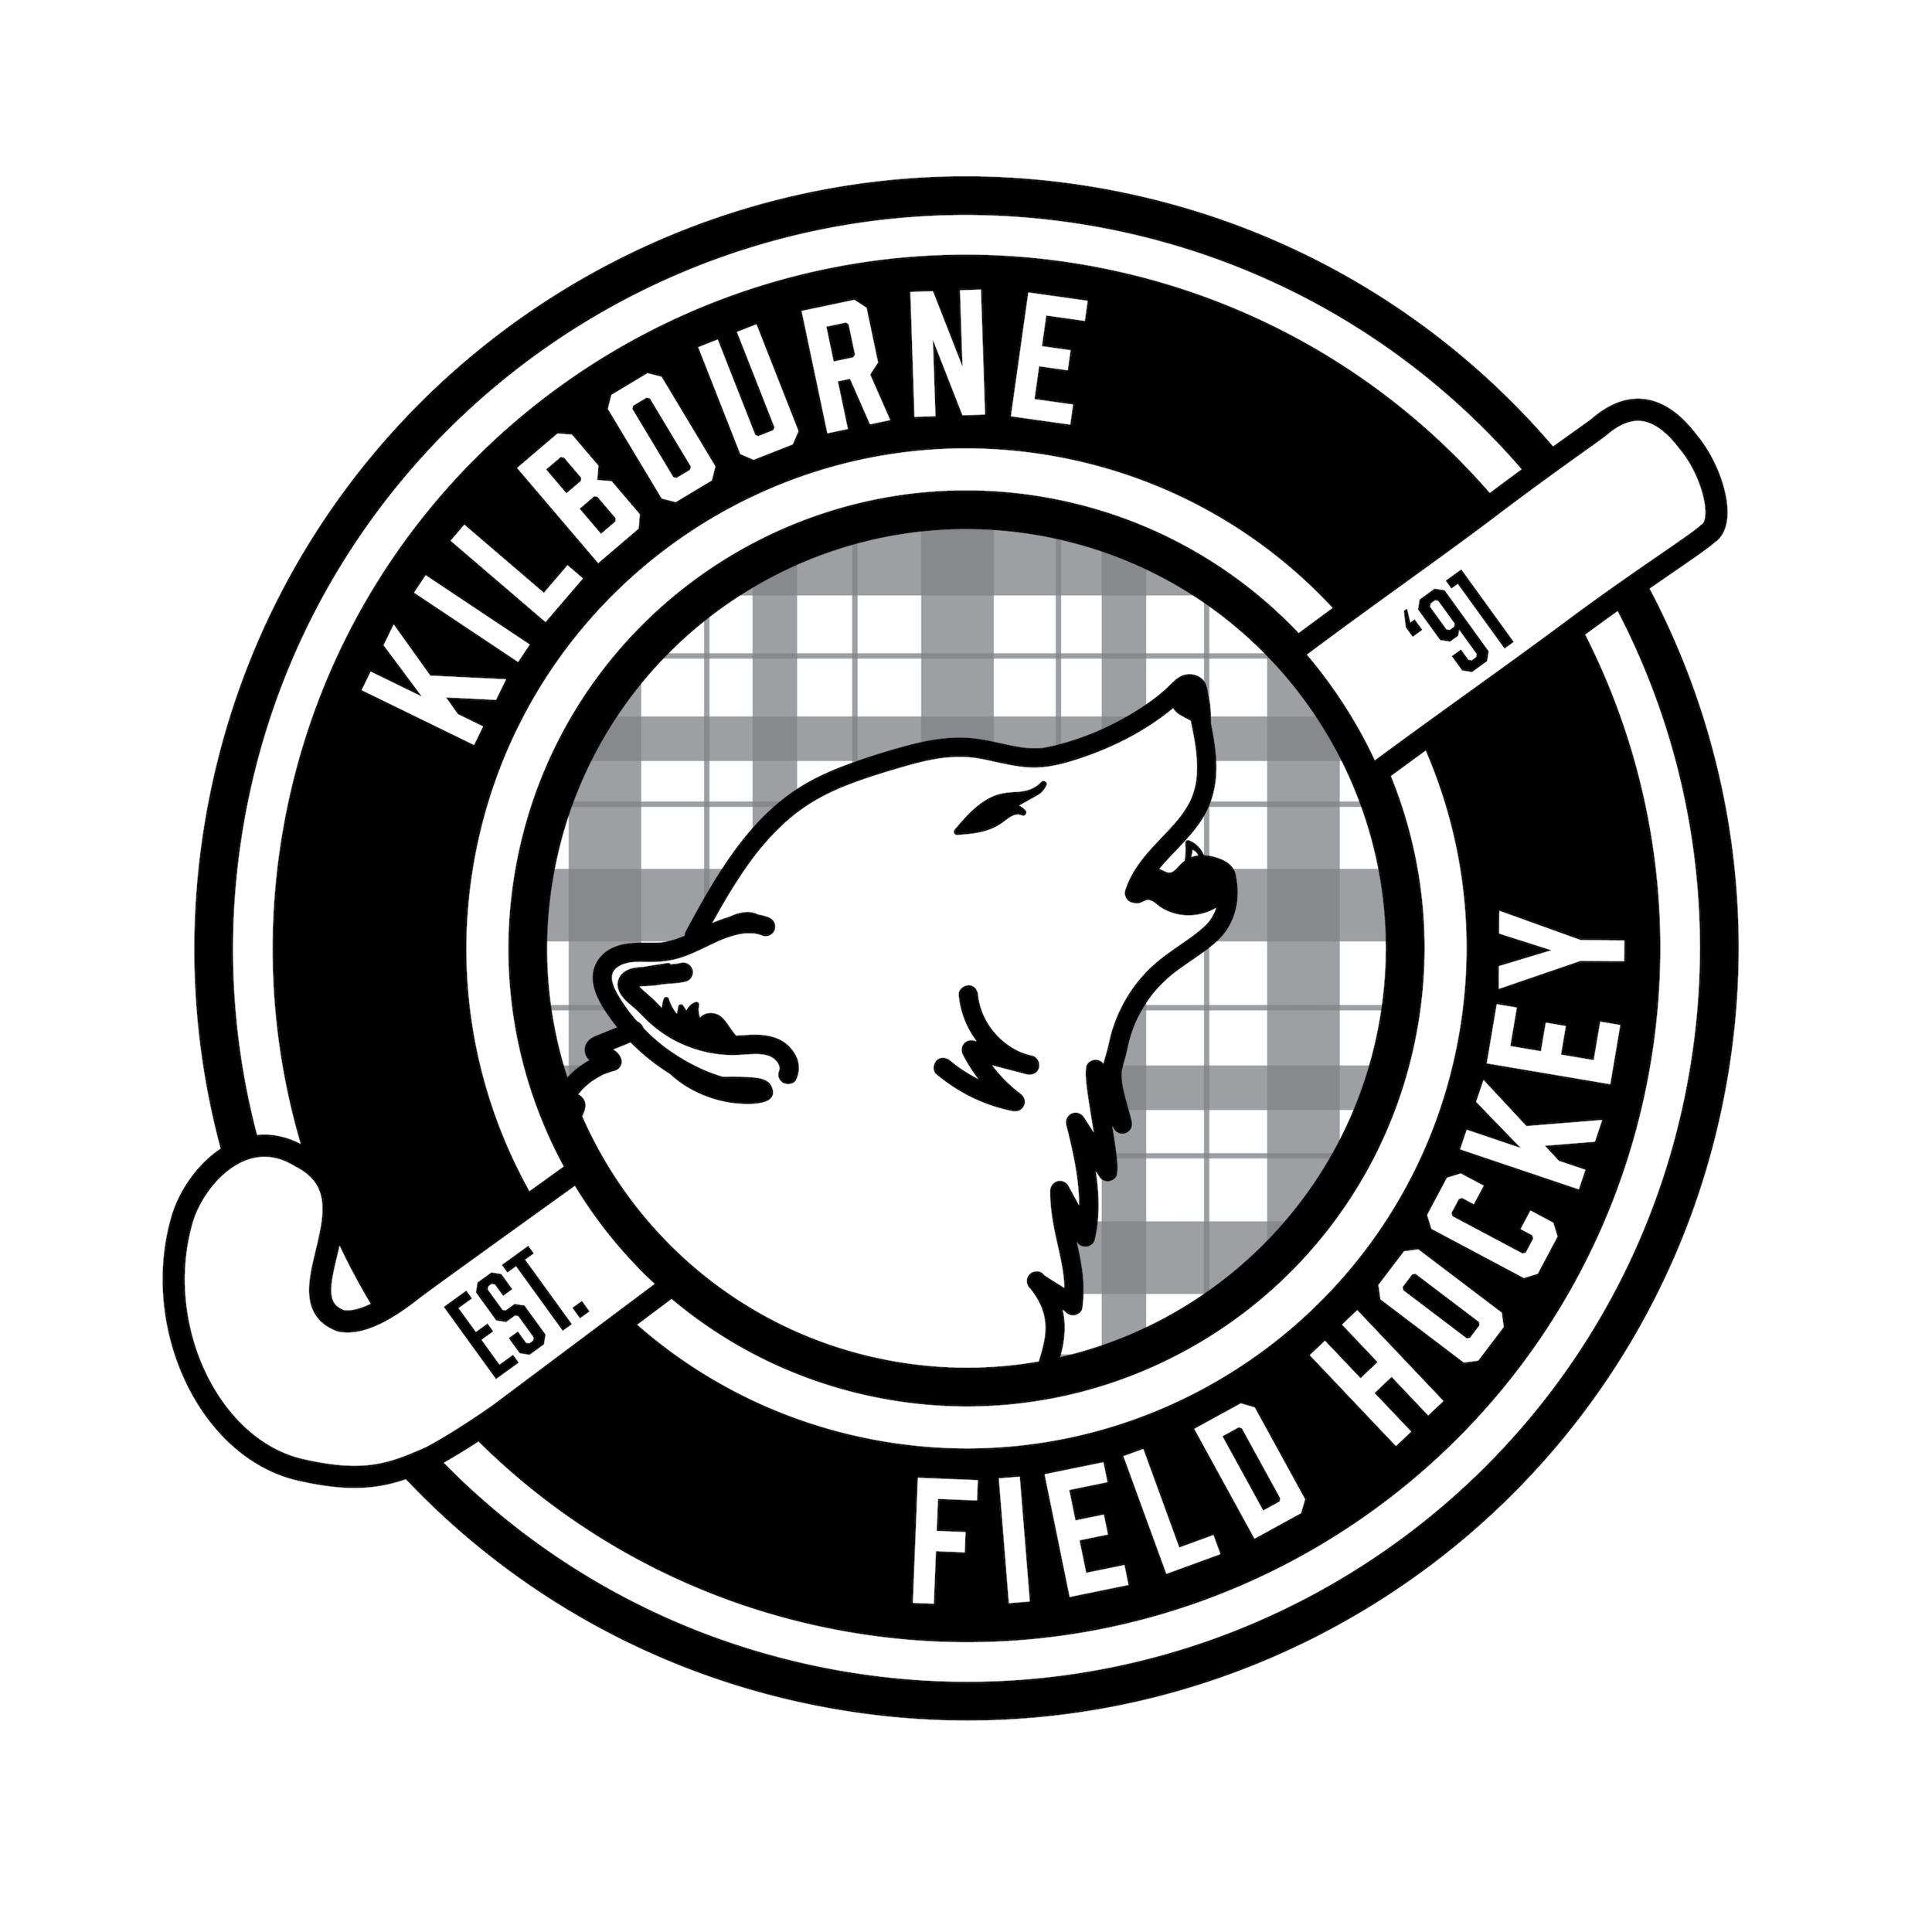 kilbourne fh bw-01.png